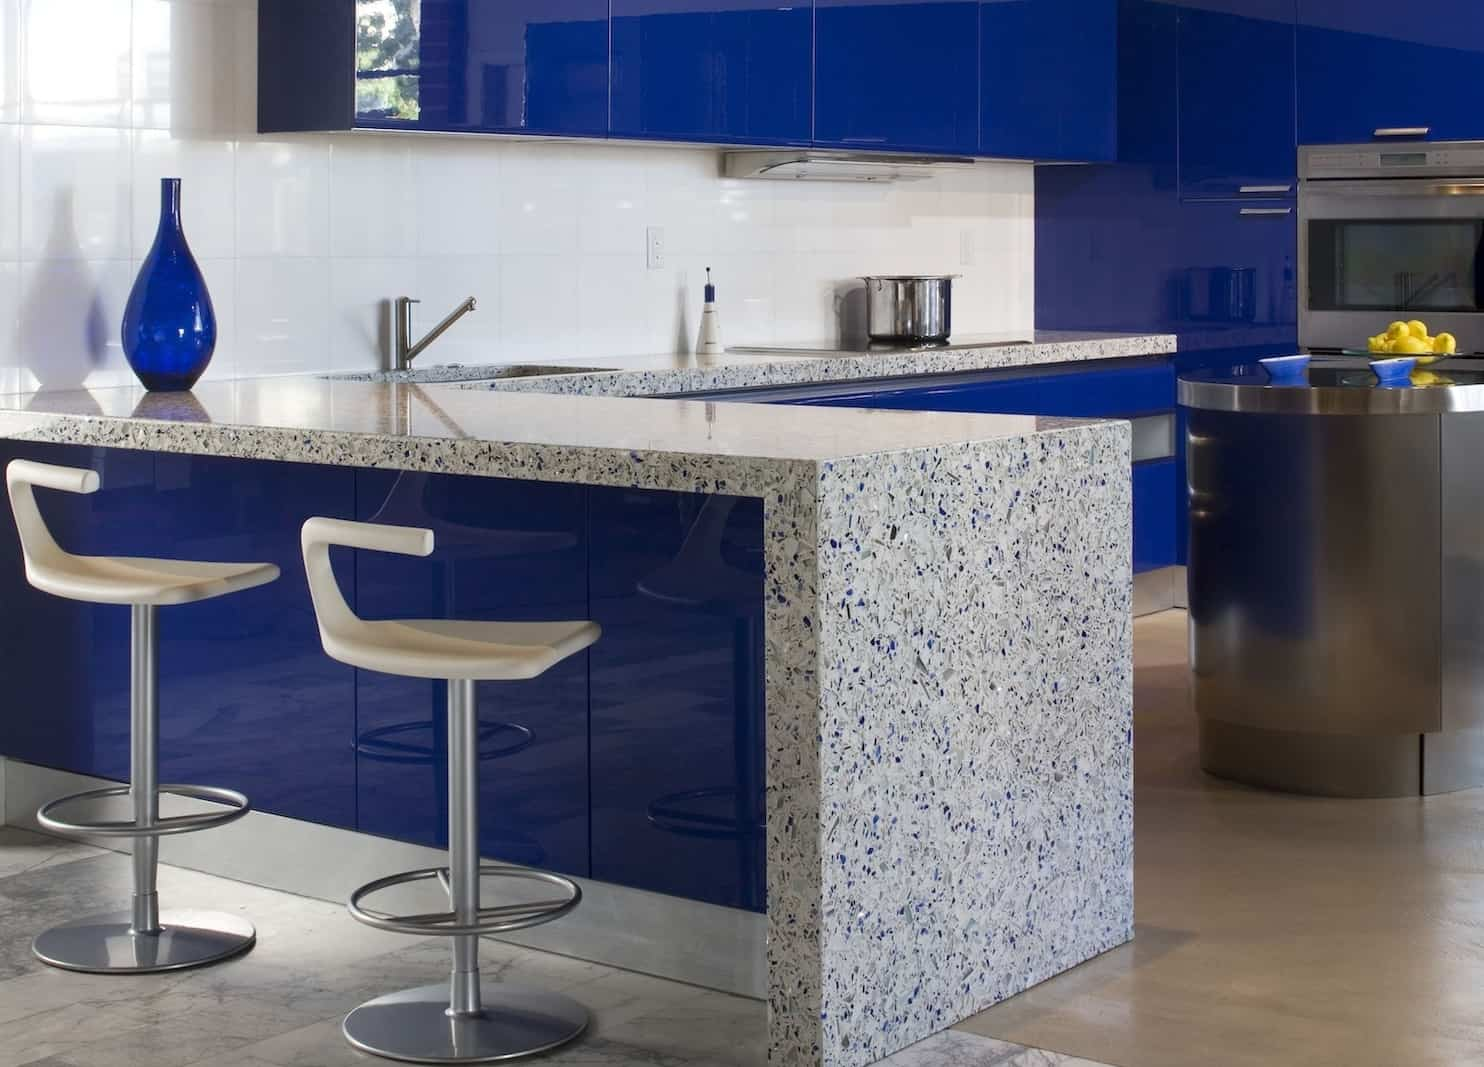 modern kitchen countertops from unusual materials kitchen countertop materials View in gallery modern countertops unusual material kitchen vetrazzo